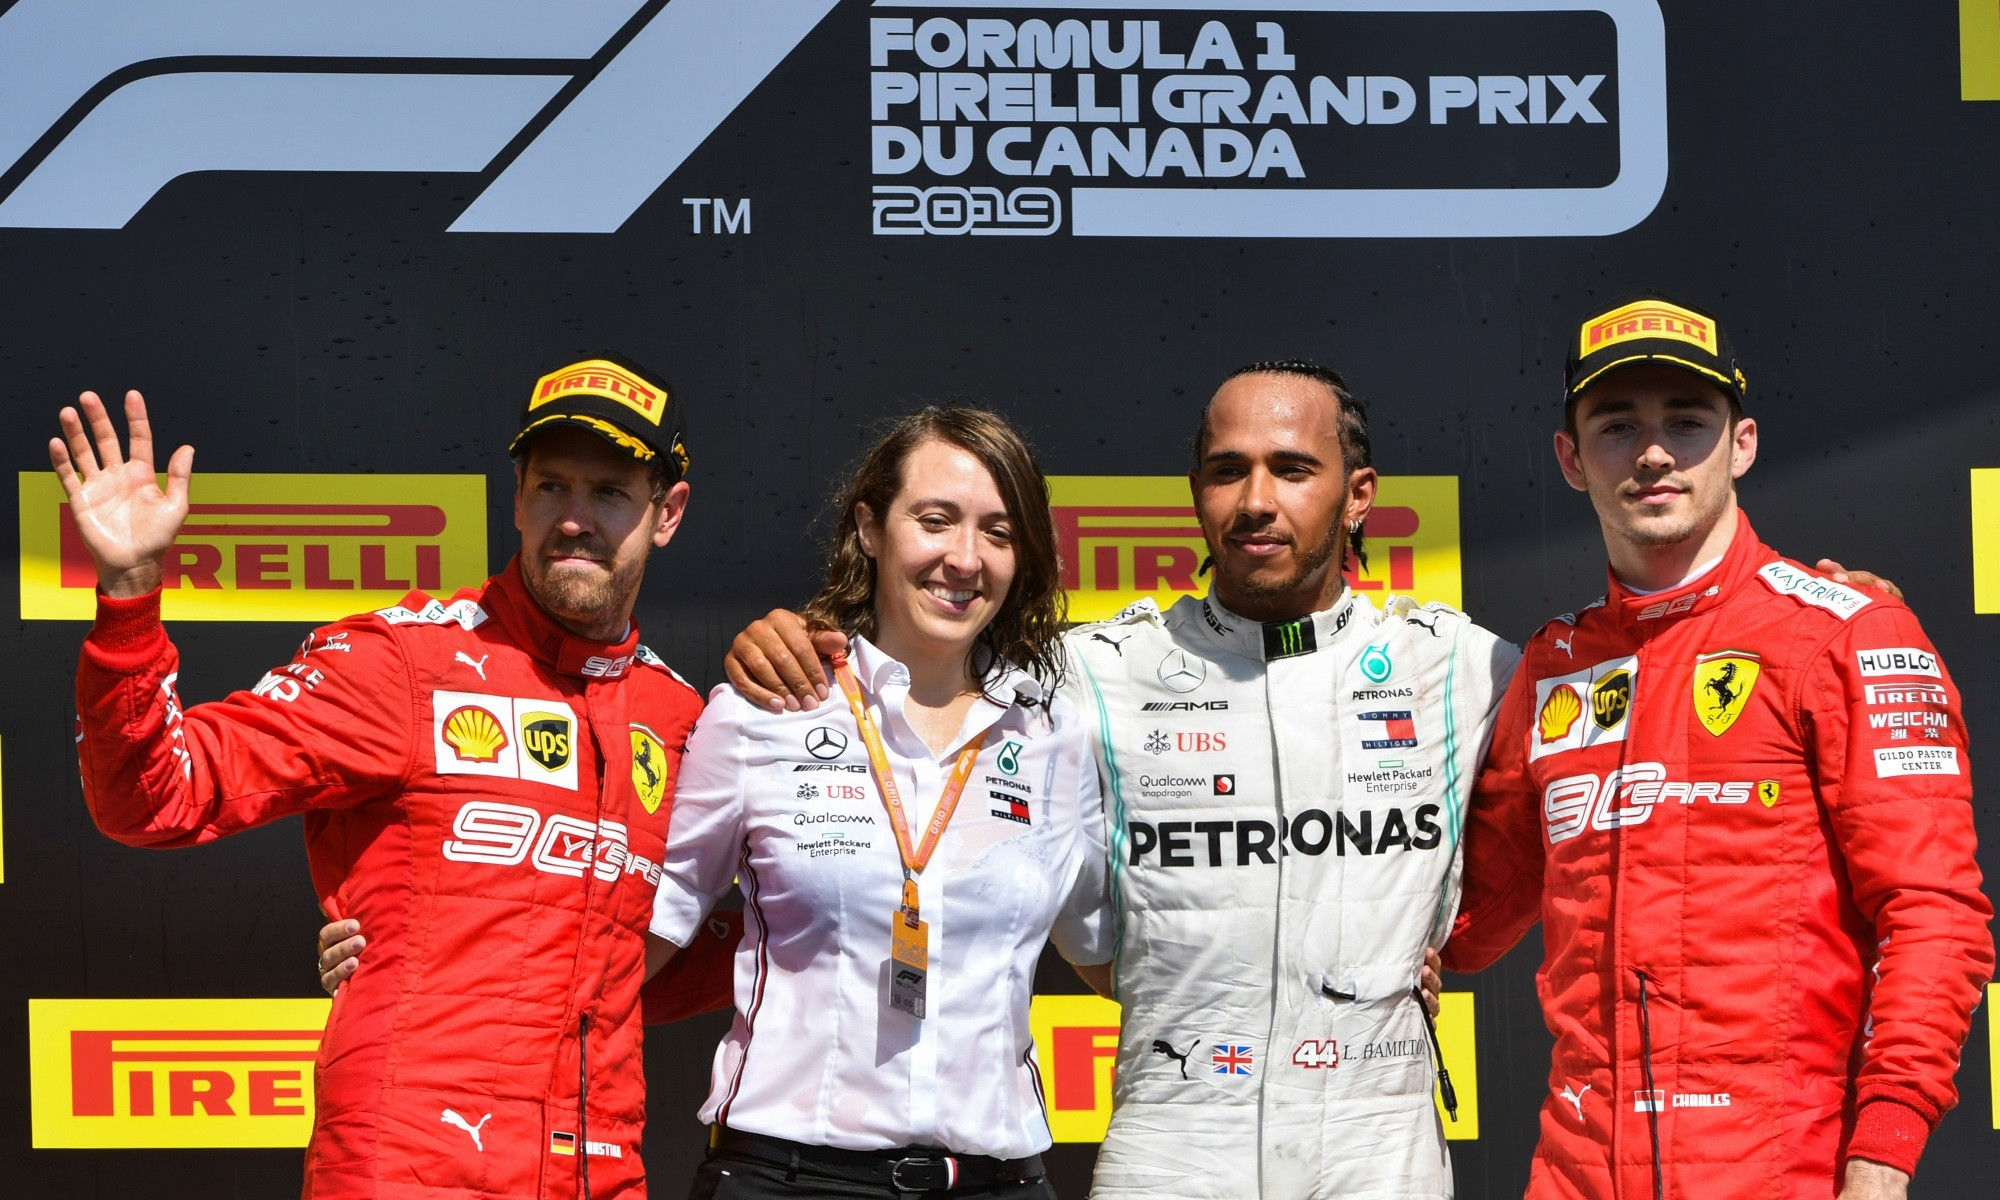 The podium positions